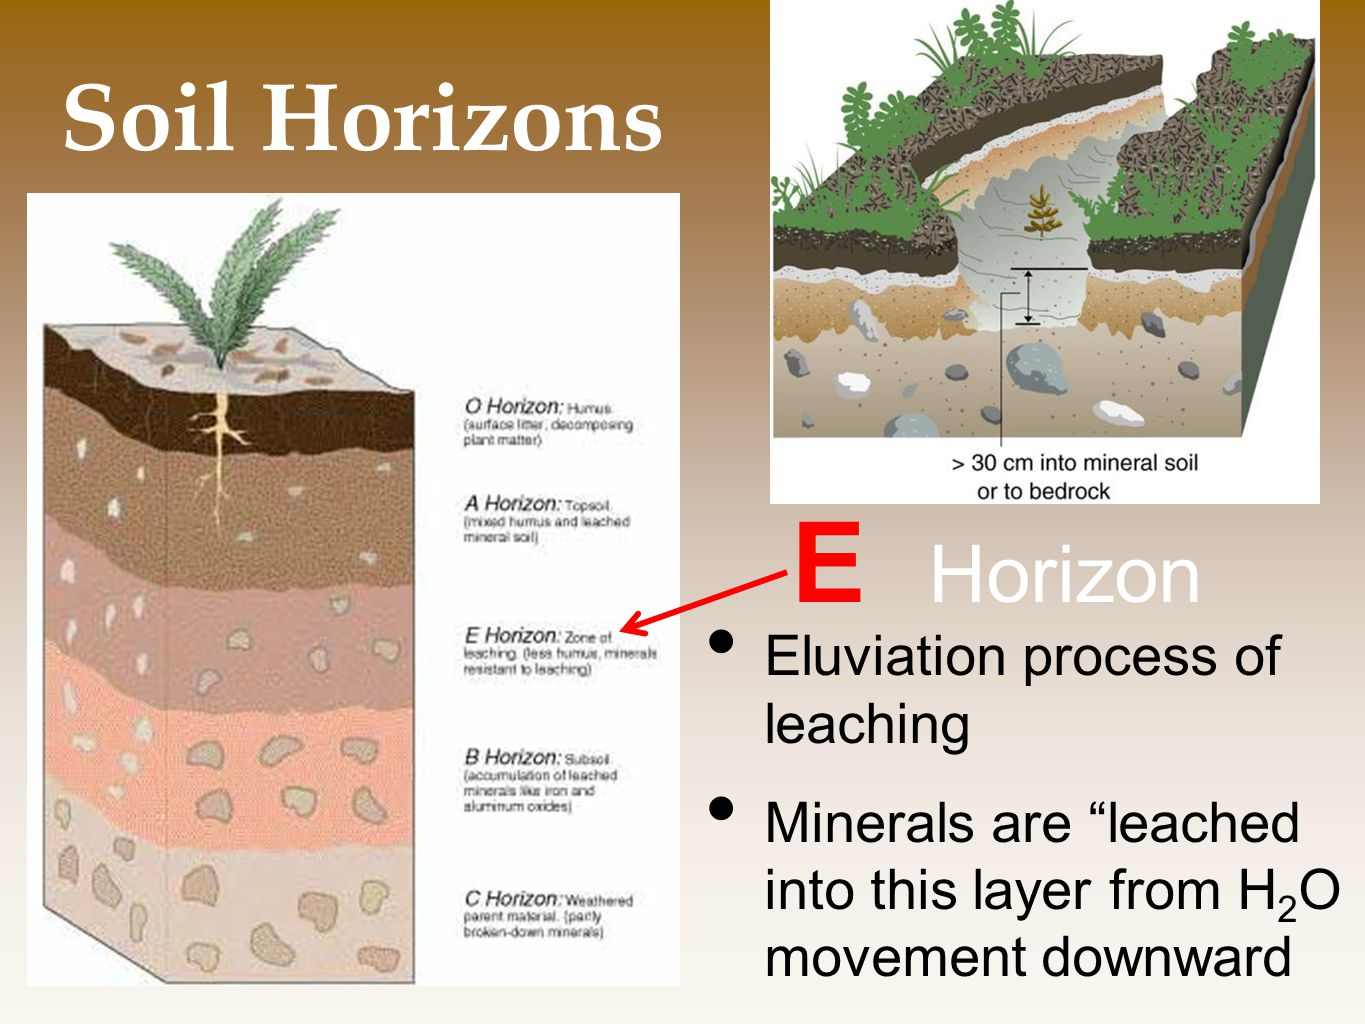 Soil Horizons E Horizon Eluviation process of leaching Minerals are leached into this layer from H 2 O movement downward